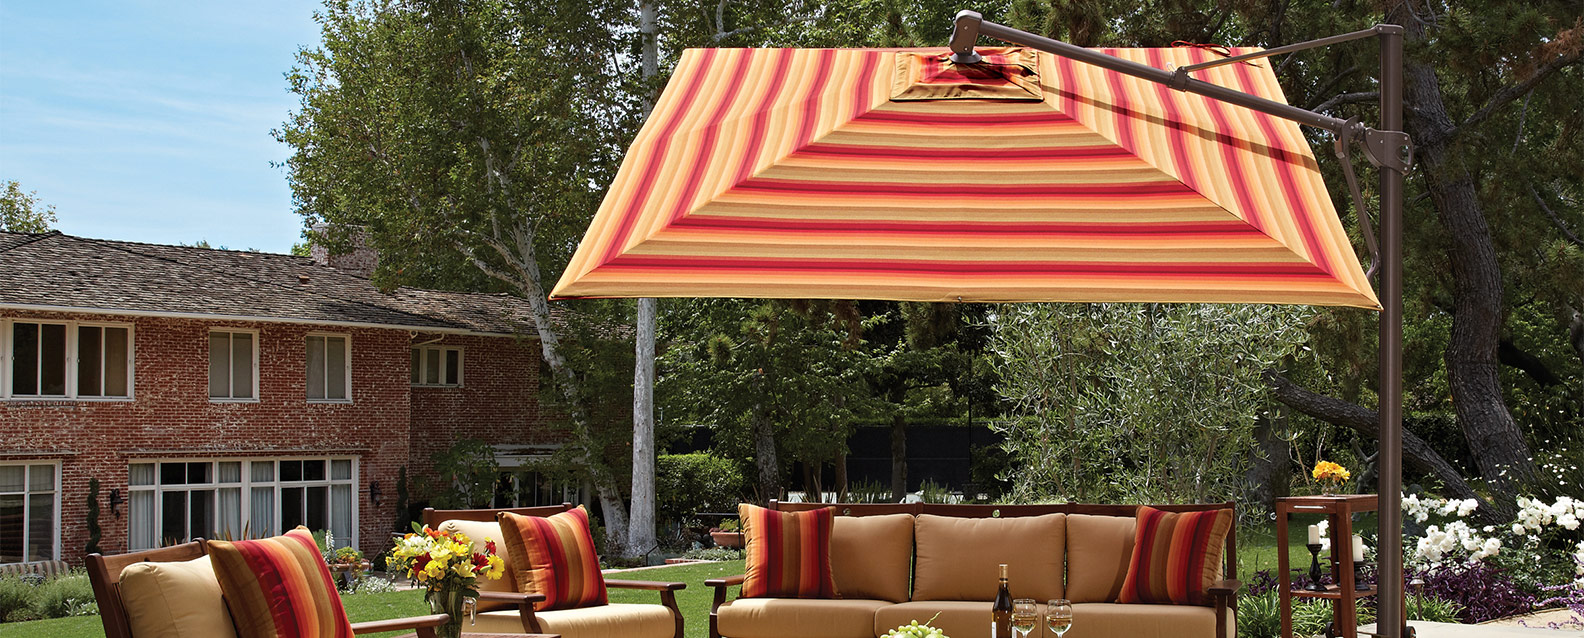 treasure garden 10 square cantilever umbrella summer